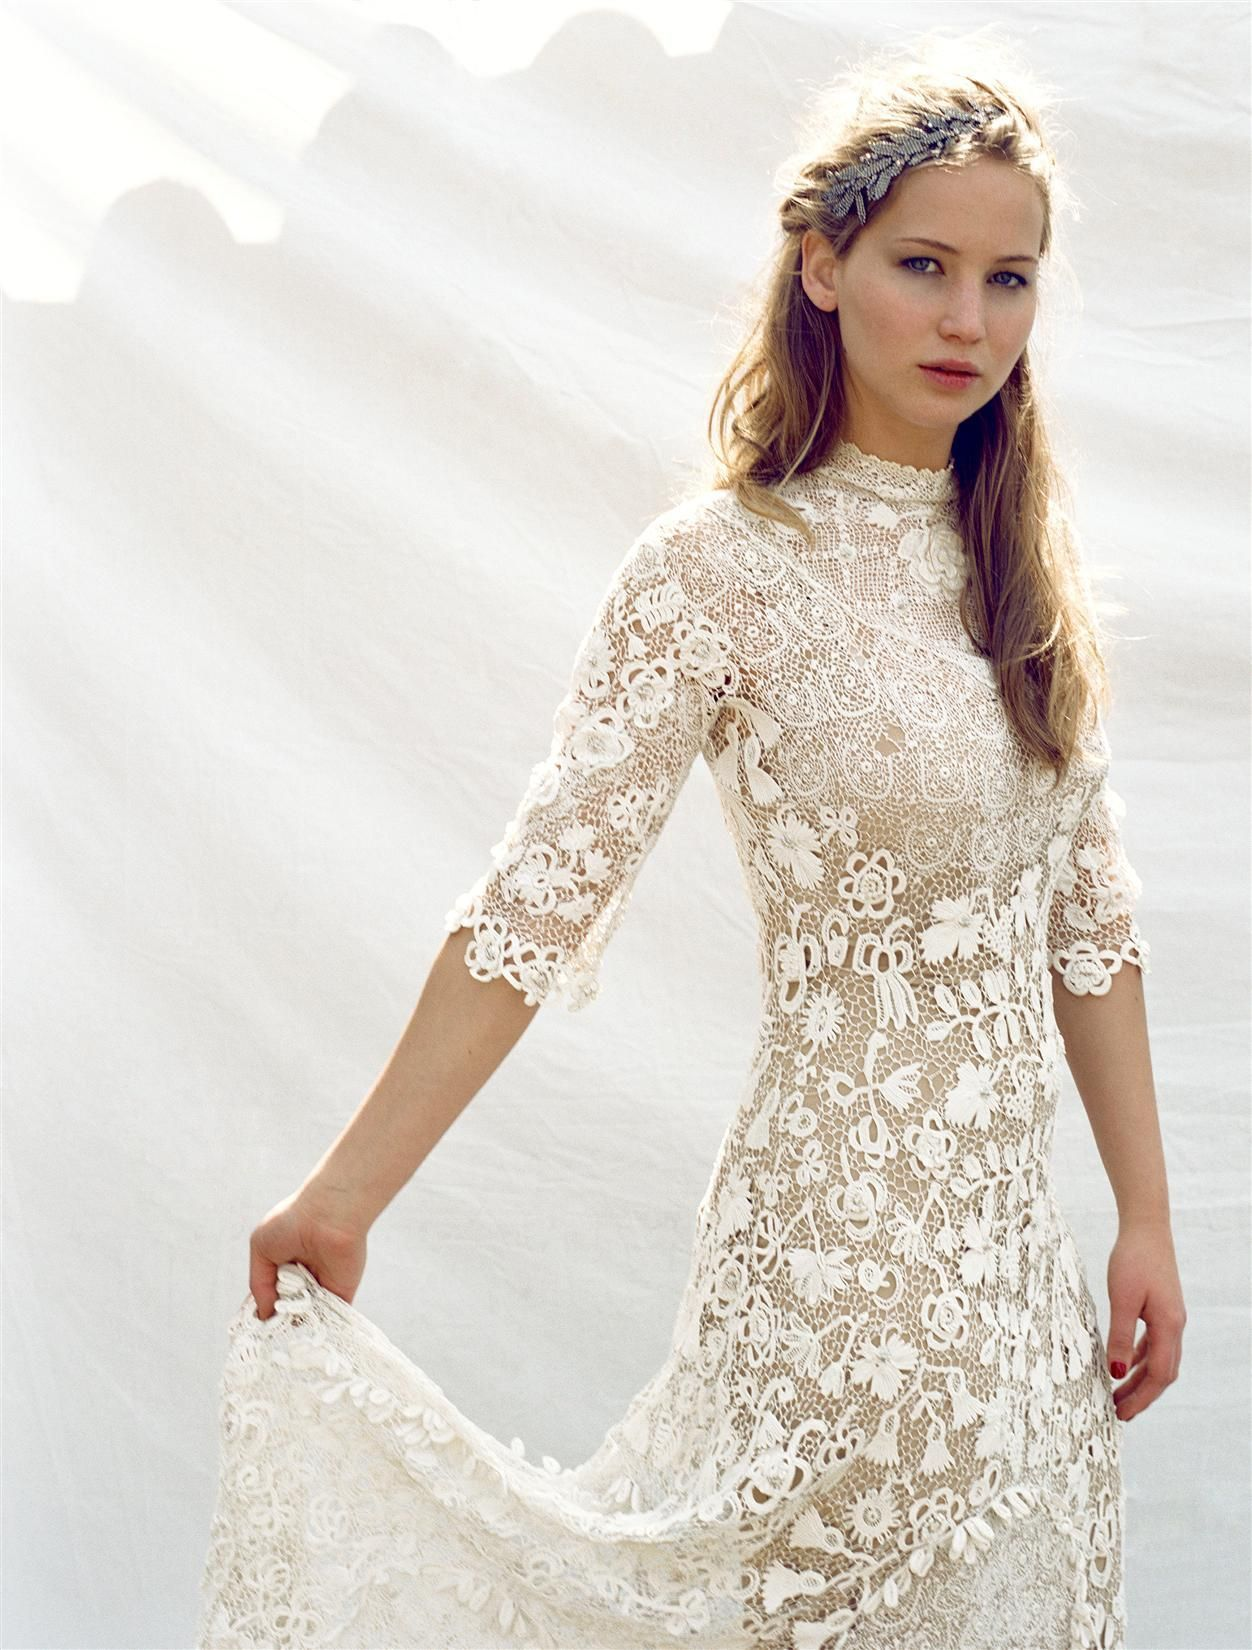 0c28a8b2996a Fashion Editorial. Jennifer Lawrence upstages the bride on Martha Stewart  Weddings cover! Beautiful Dresses ...